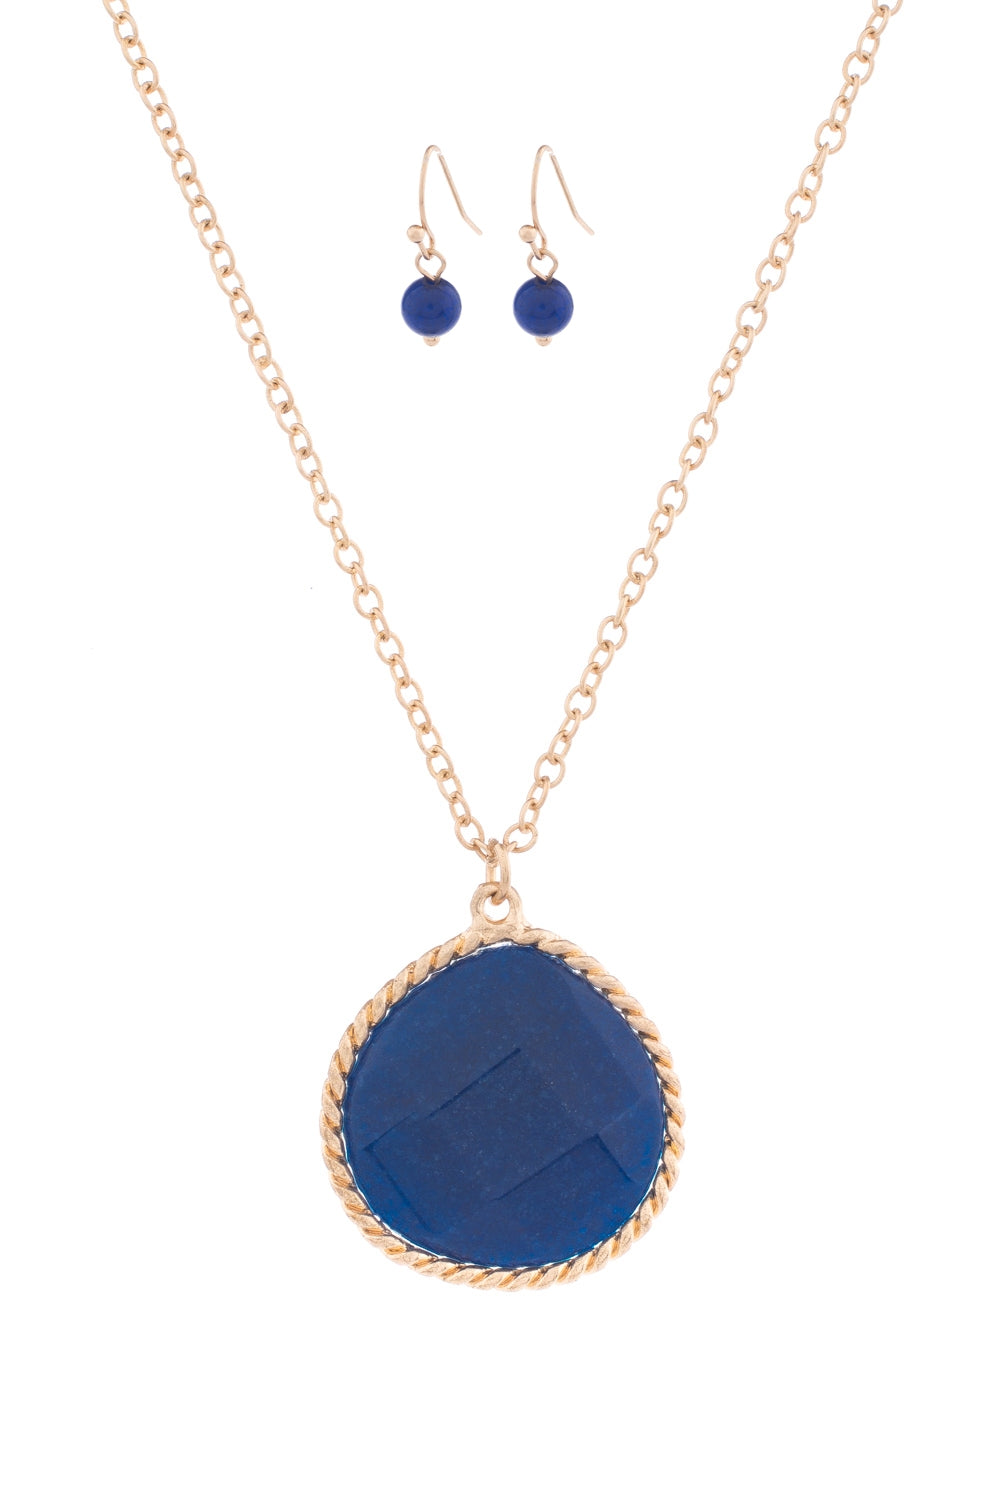 Type 1 American Blue Necklace Set